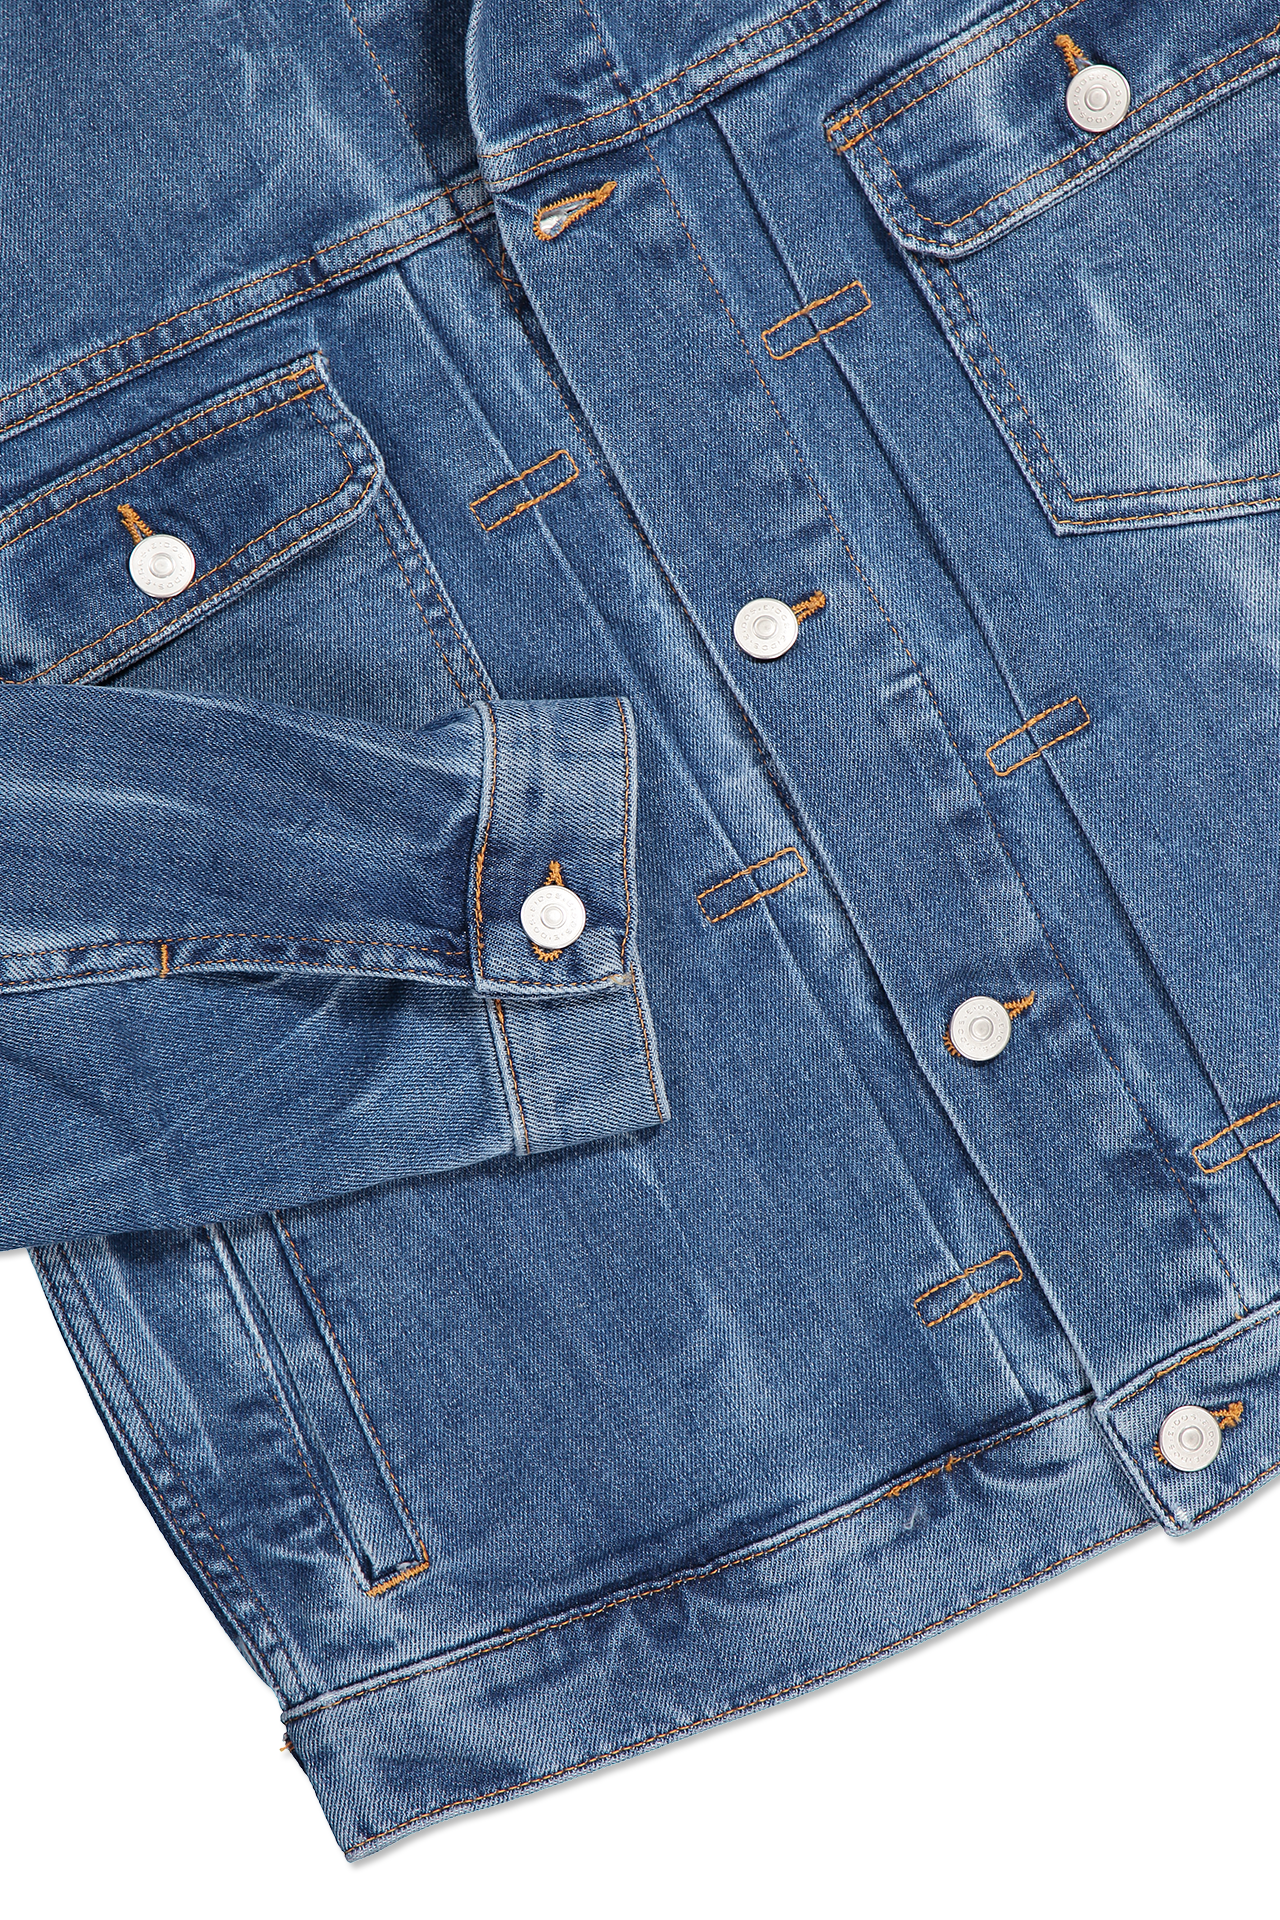 Cuff Detail Denim Jacket